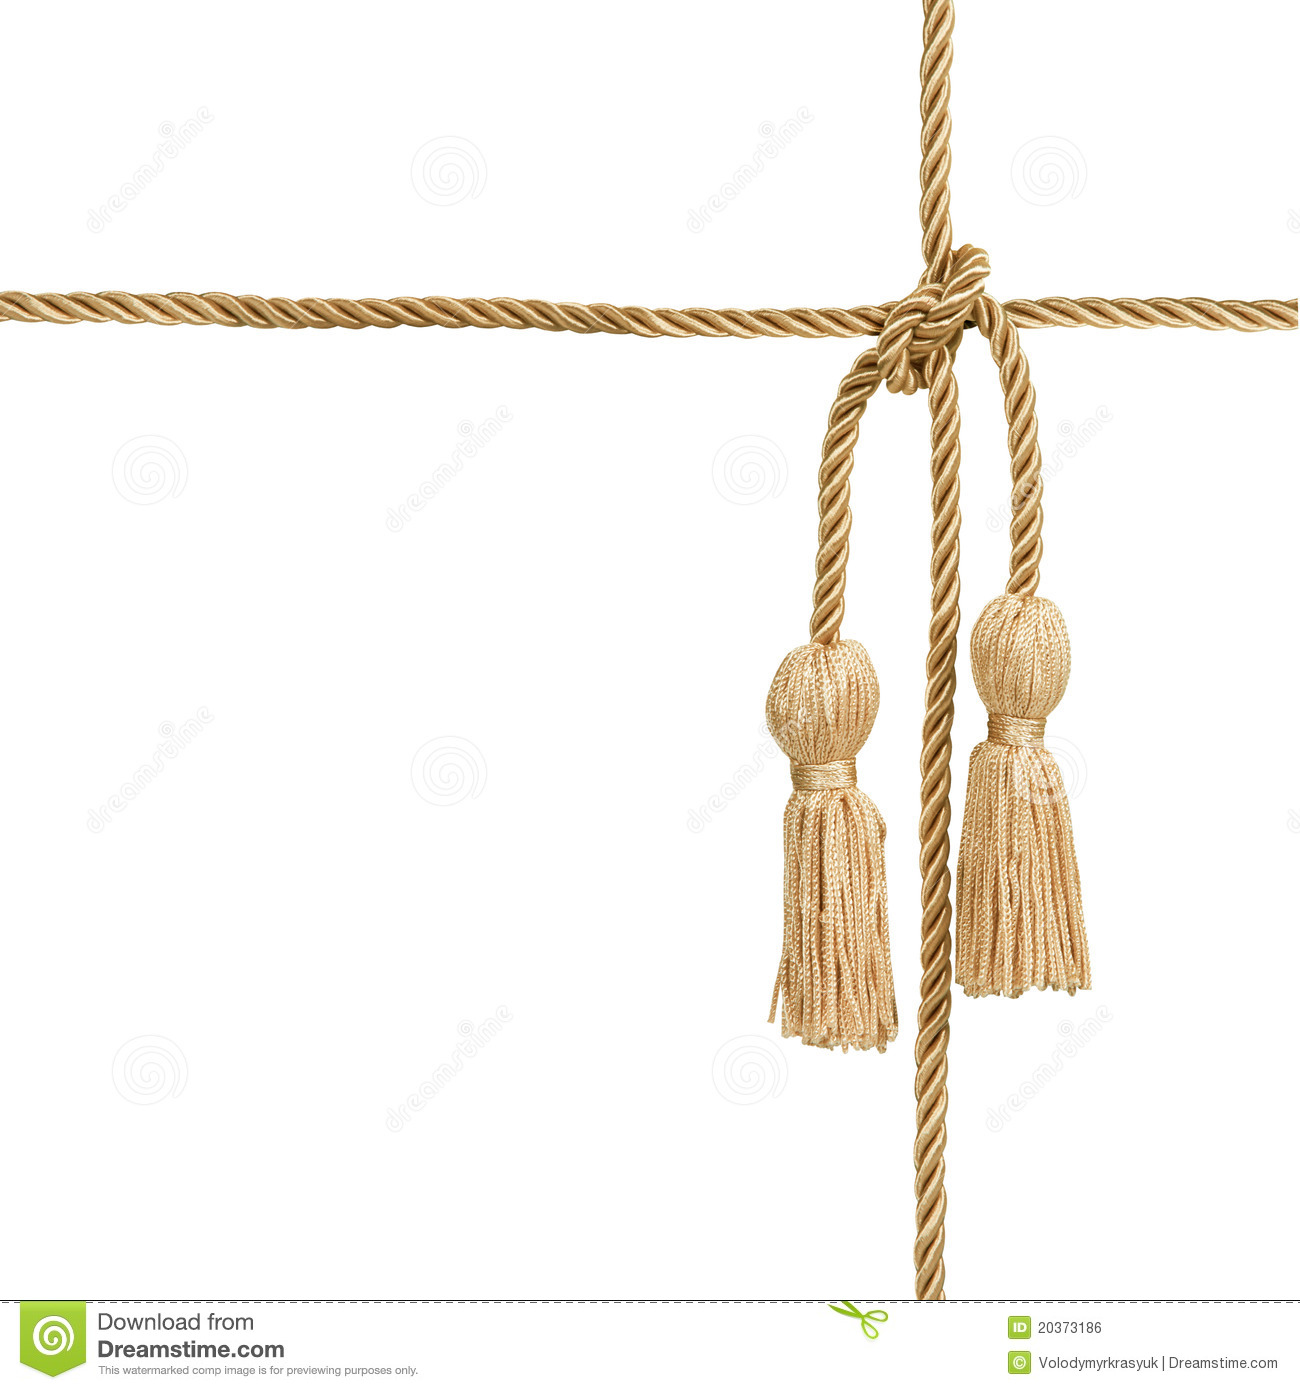 Gold rope with tassel stock photo. Image of classical ...